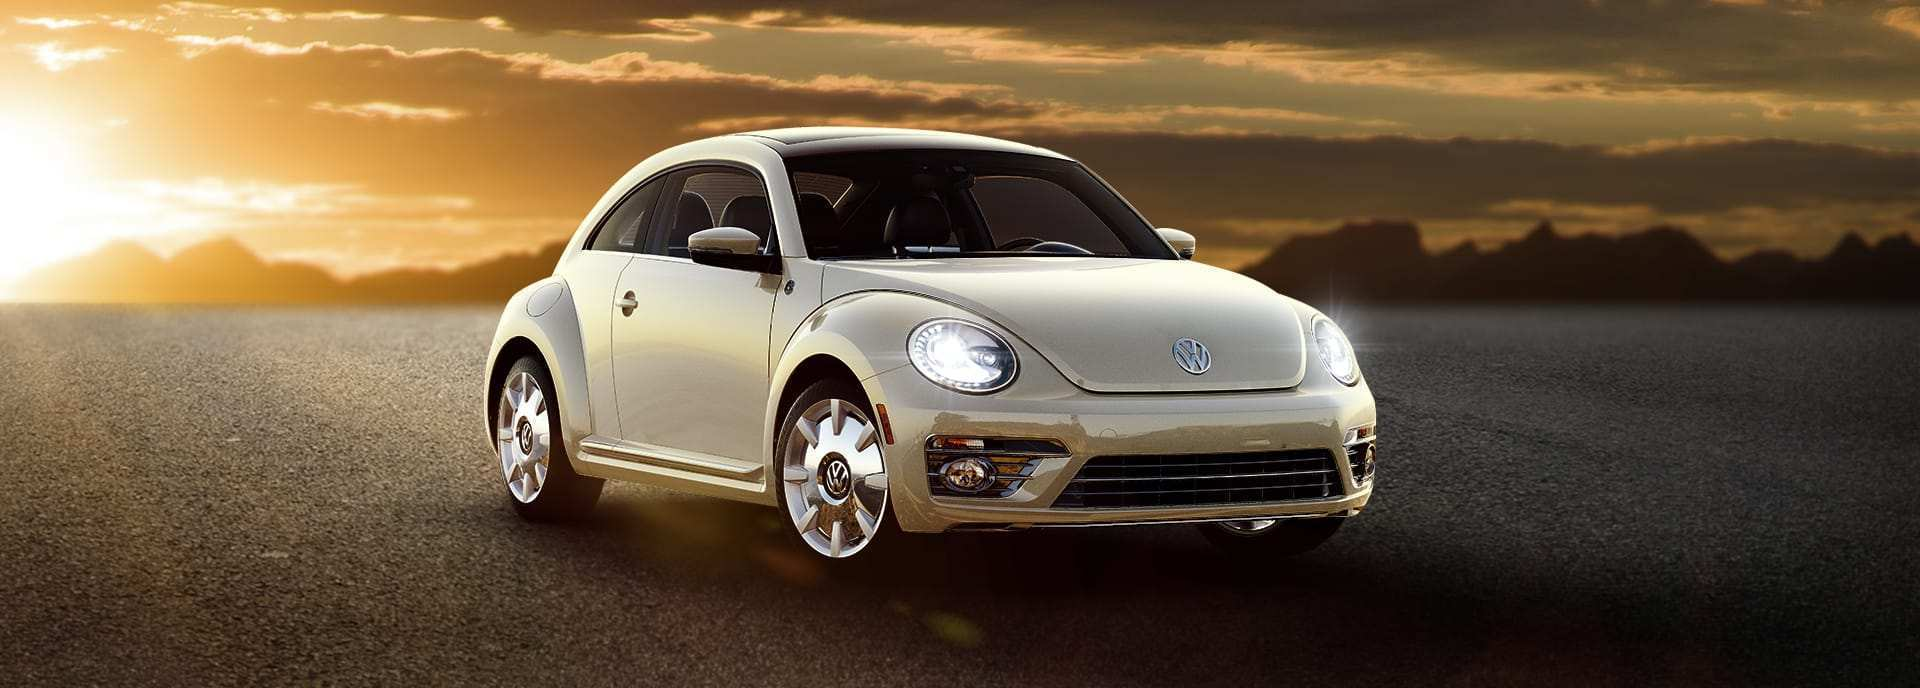 50 All New 2019 Volkswagen Beetle Dune Review And Release Date